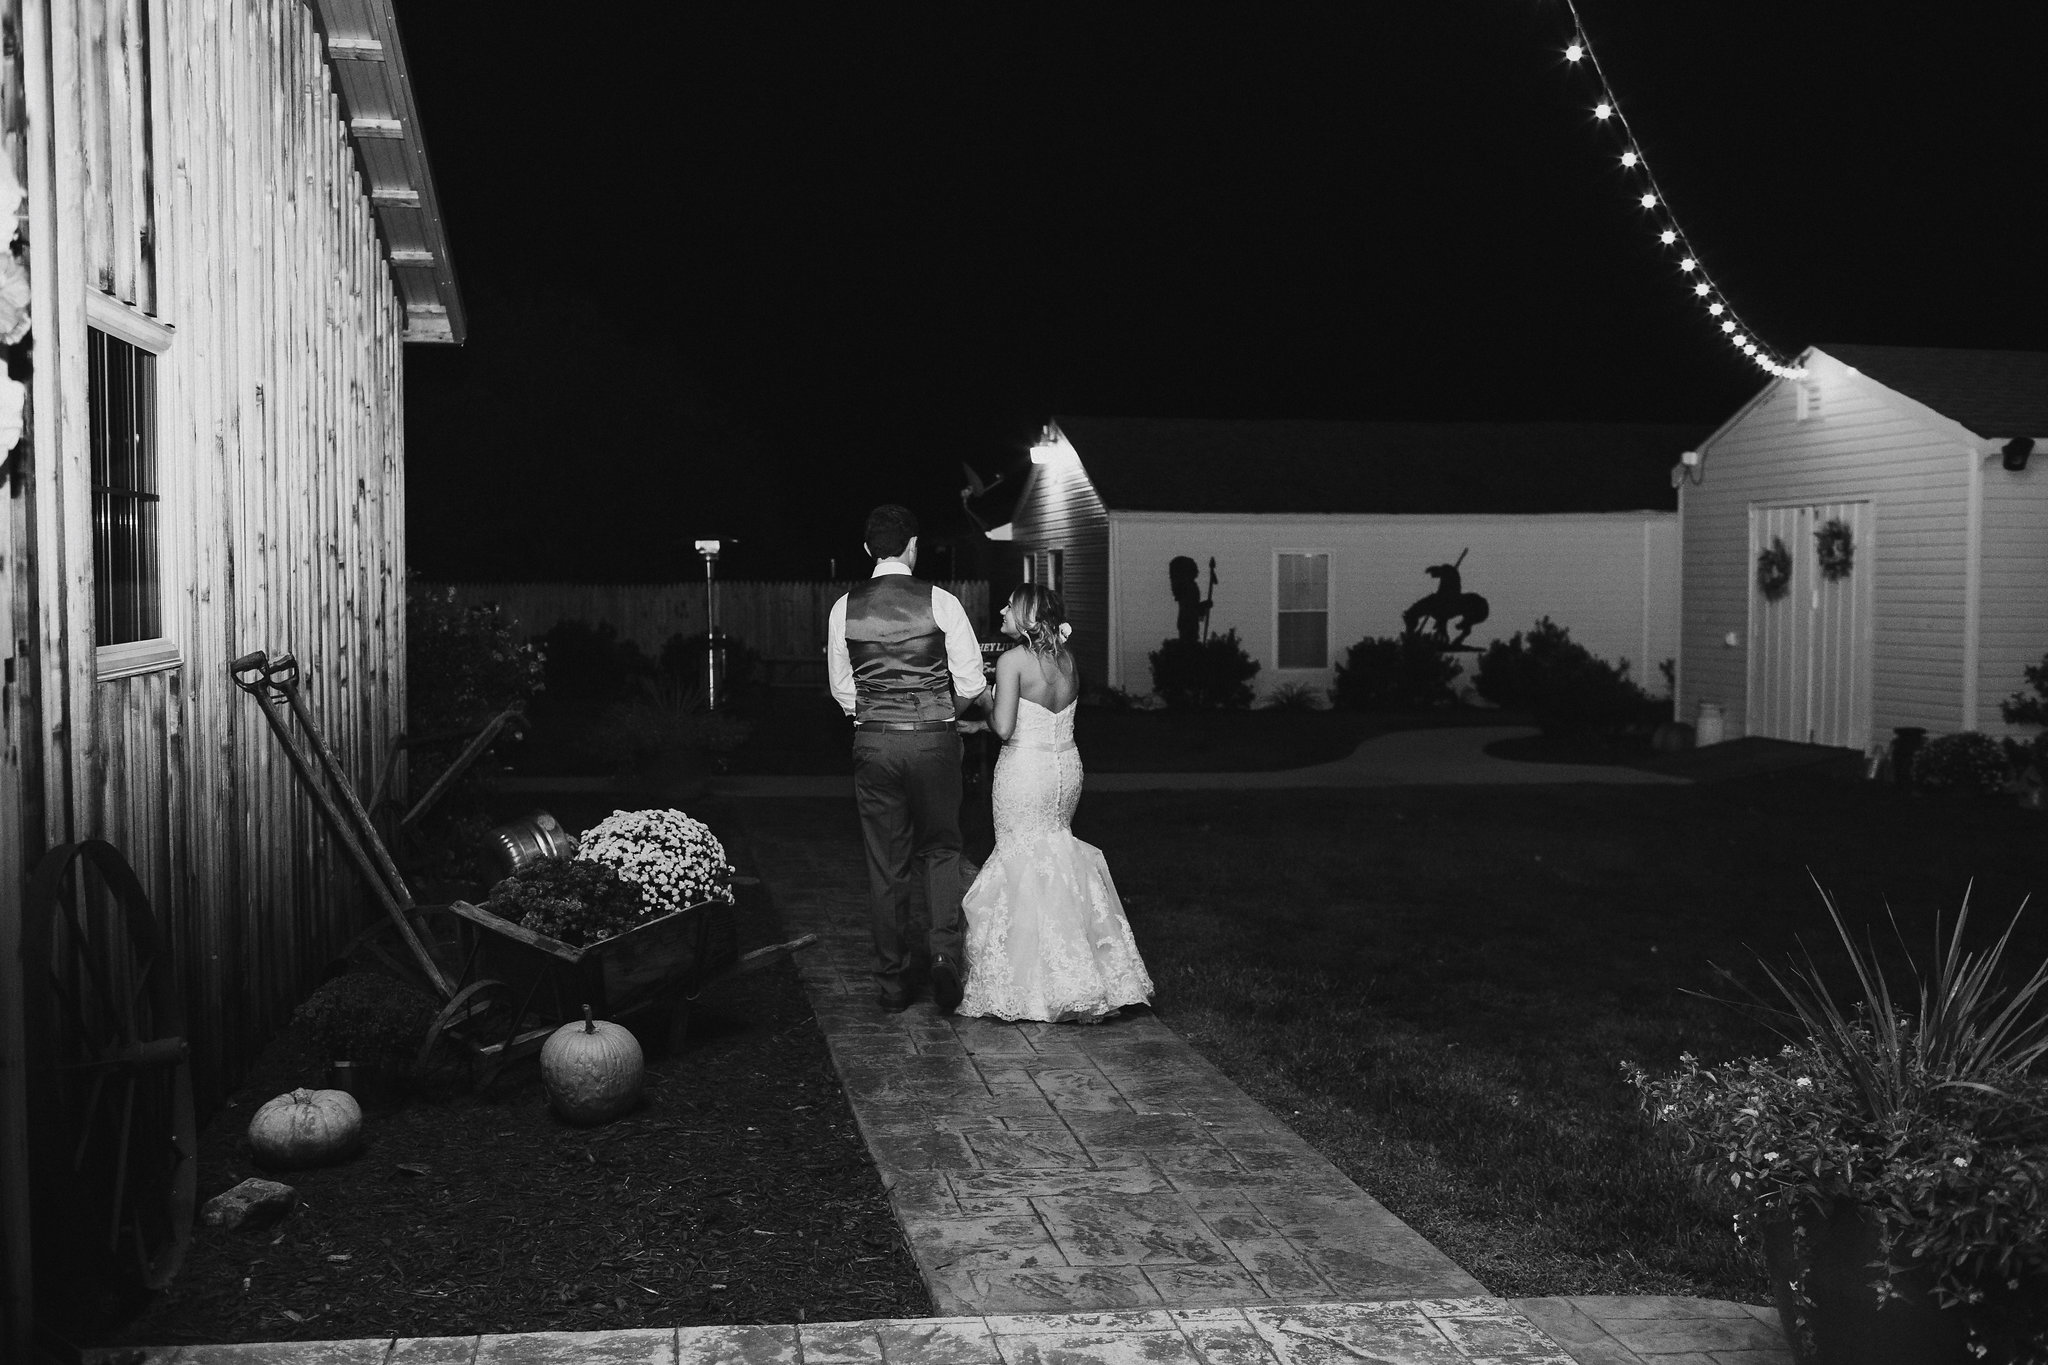 Ashley&NathanMarried2017-11-10at19.26.55PM101.jpg